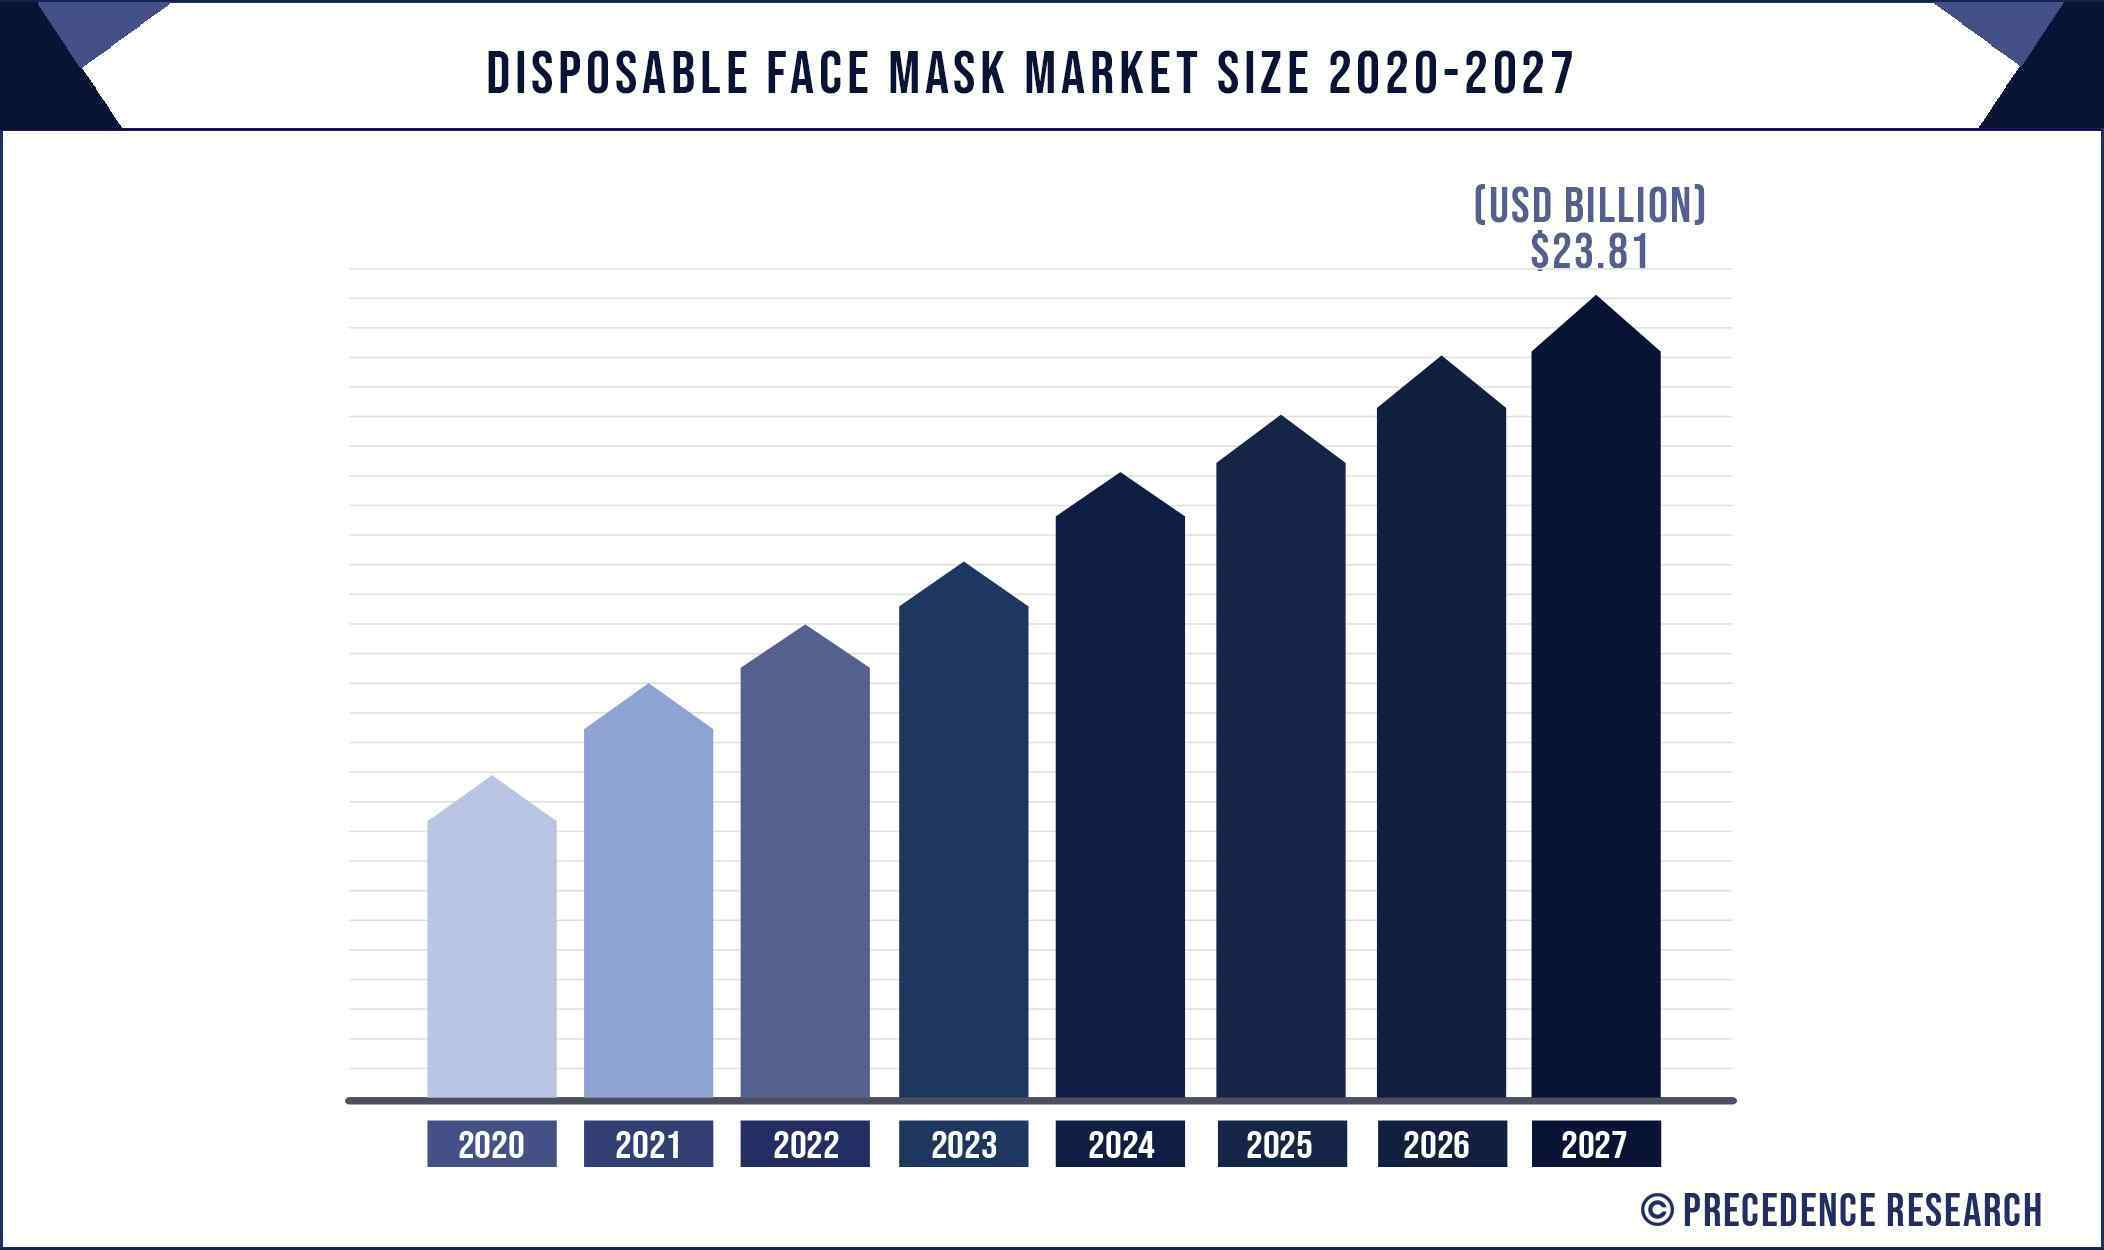 Disposable Face Mask Market Size 2020 to 2027